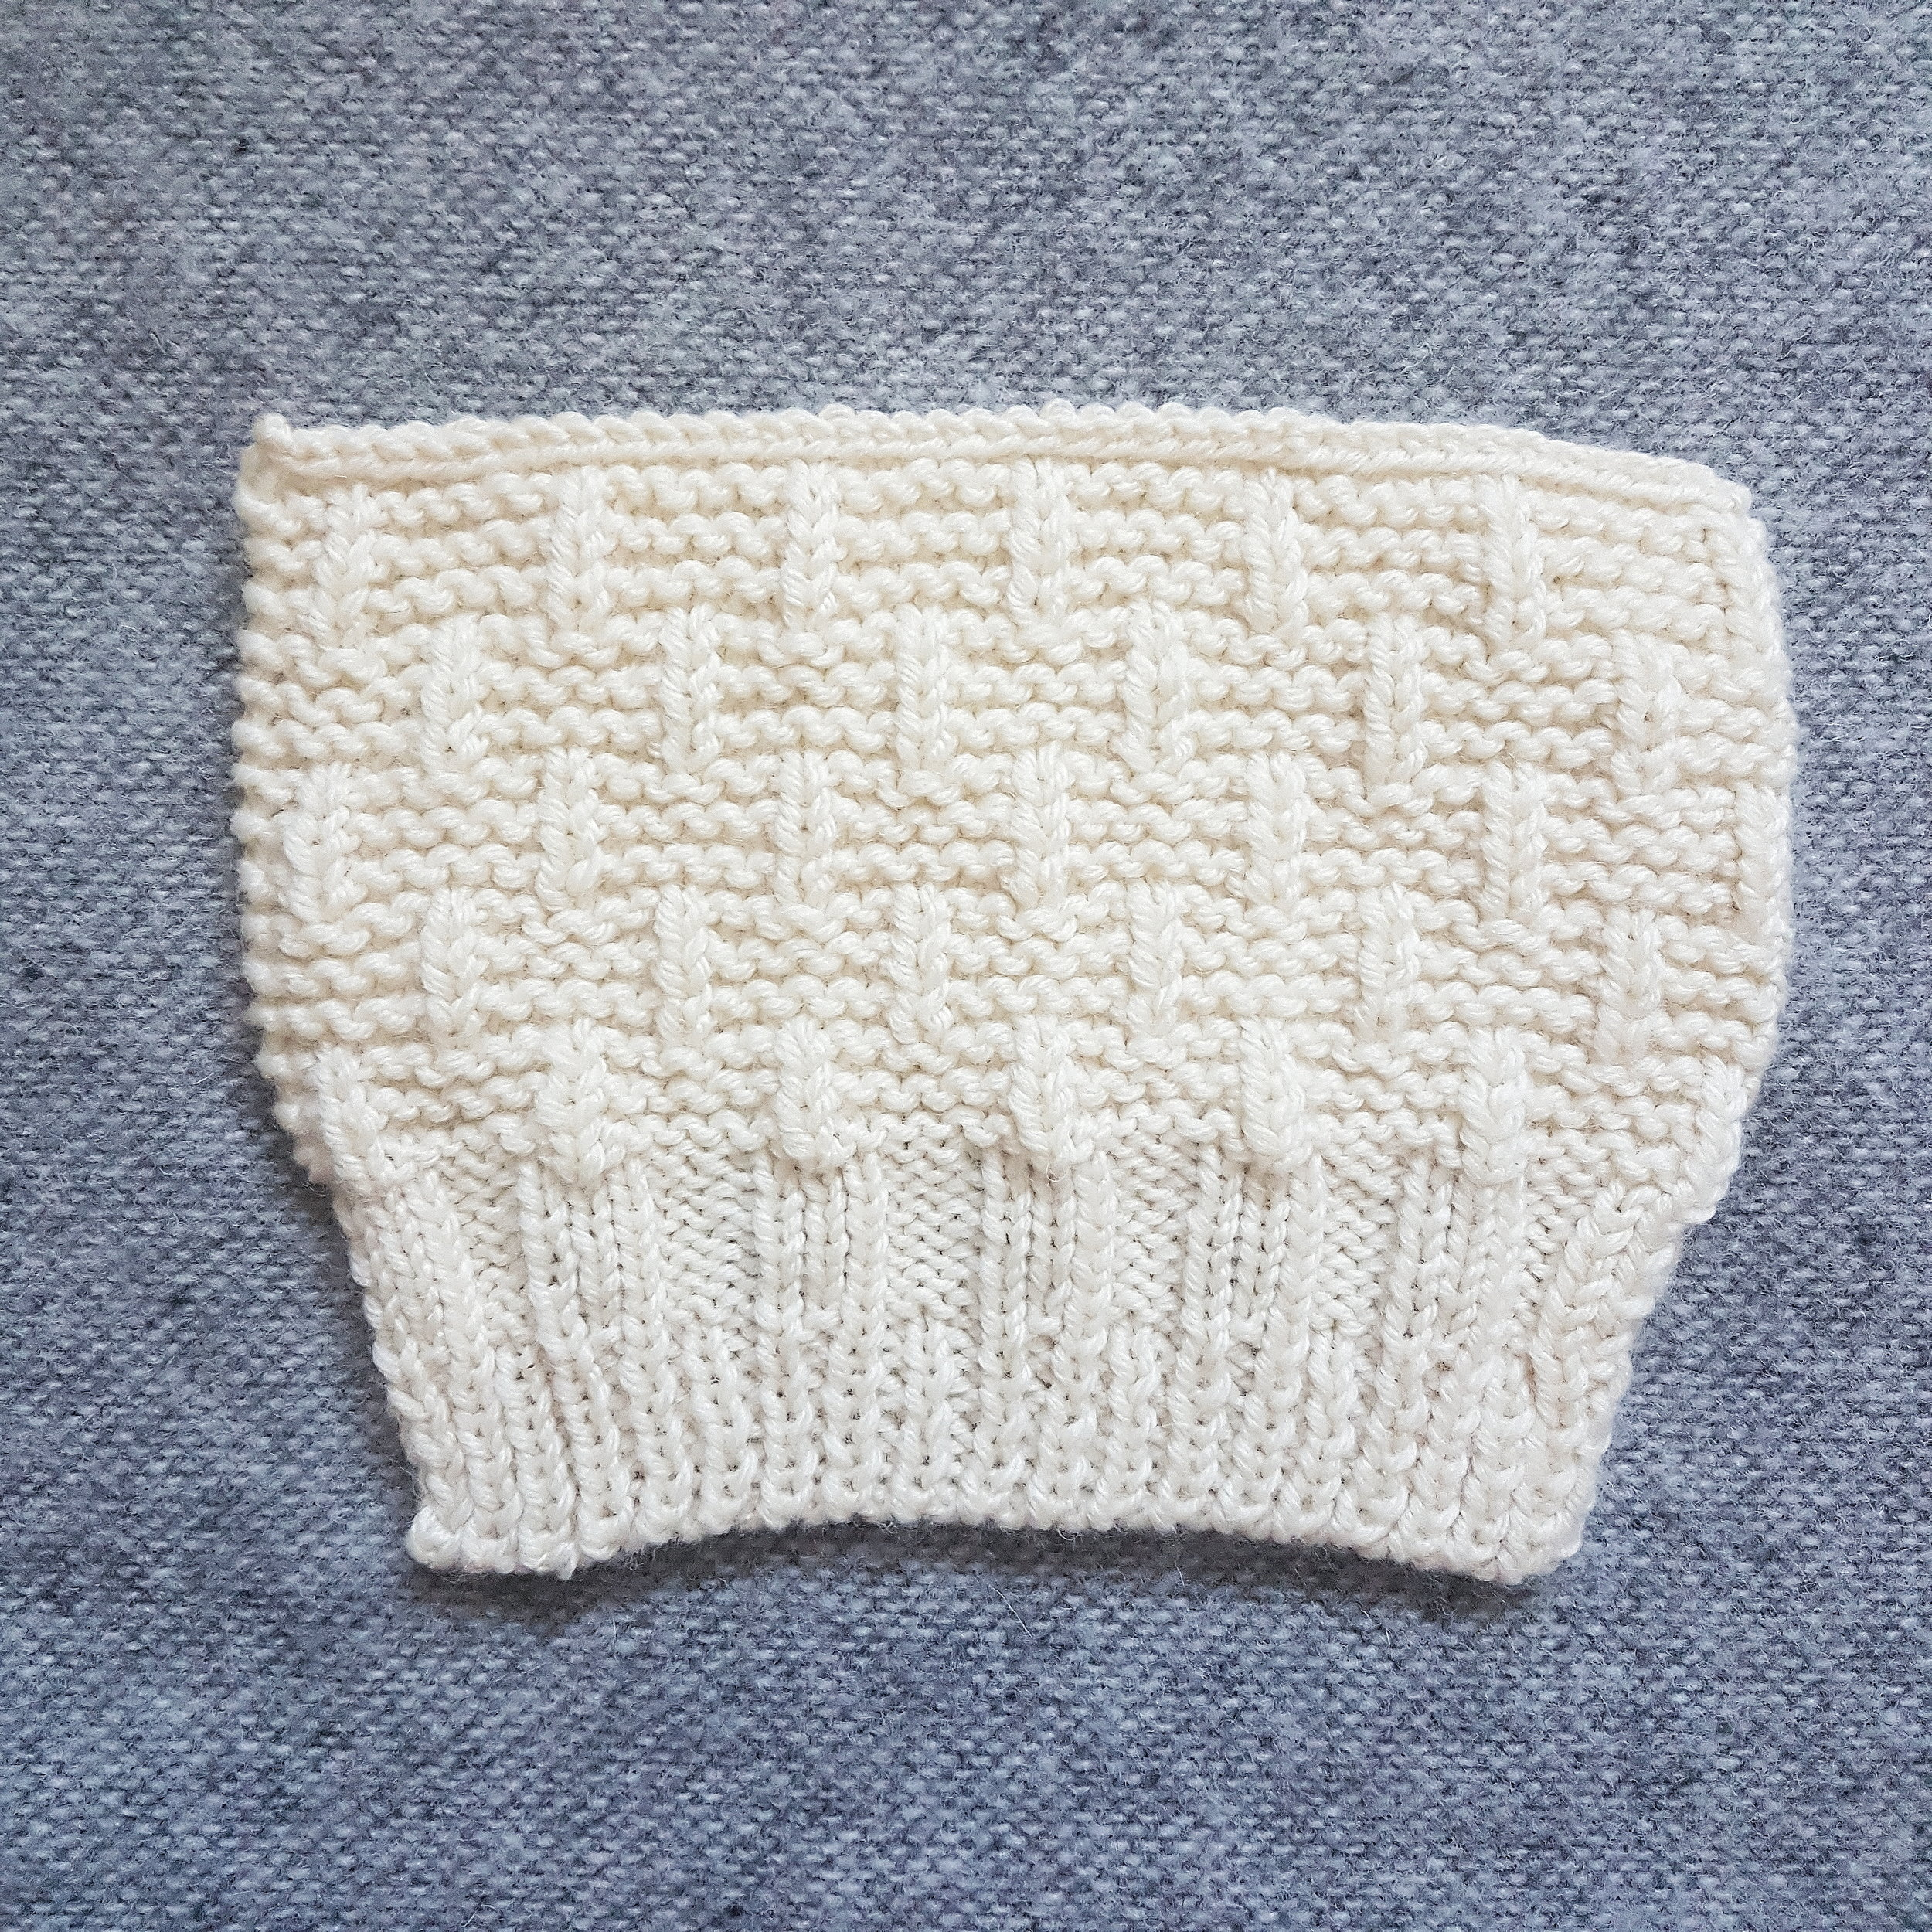 How to Design Knitting Patterns Checklist